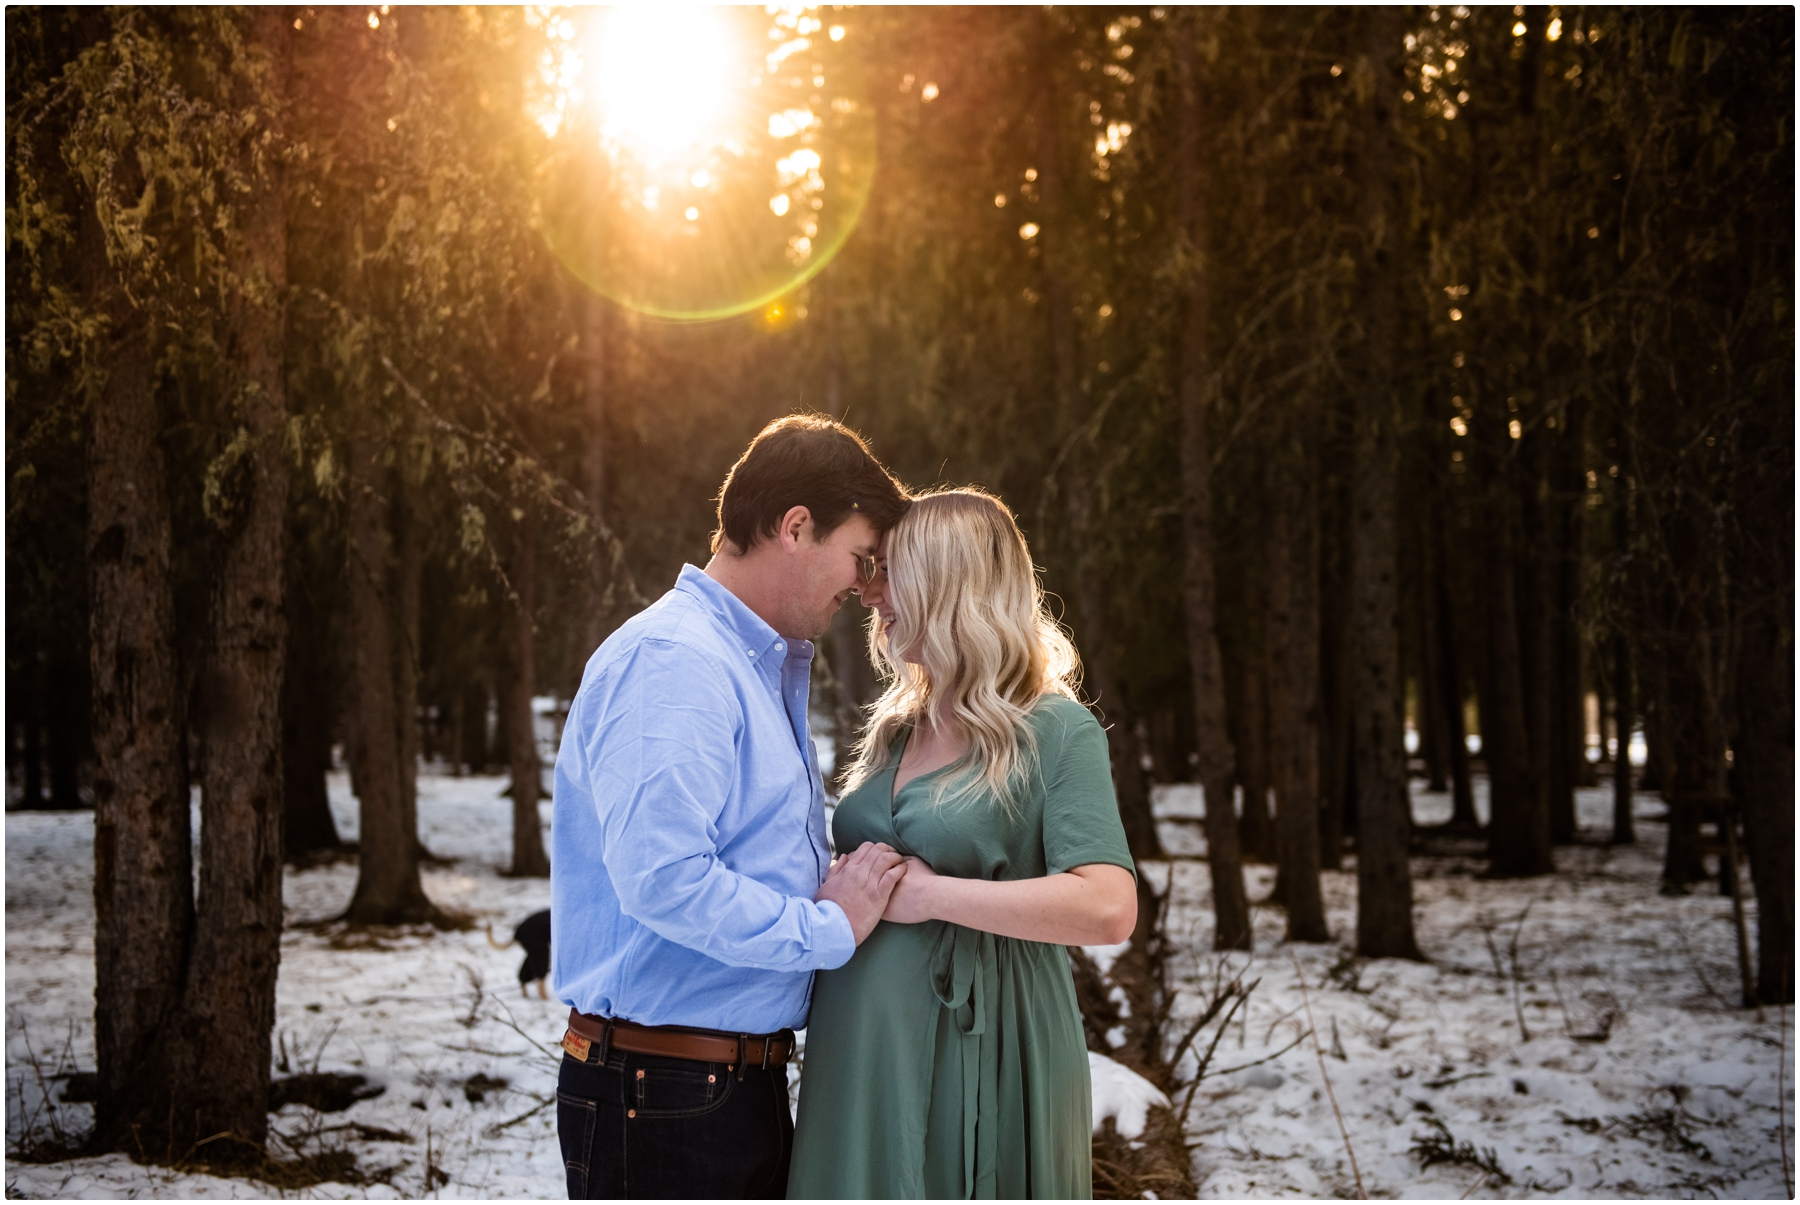 Kananaskis Maternity Photographer - Bragg Creek